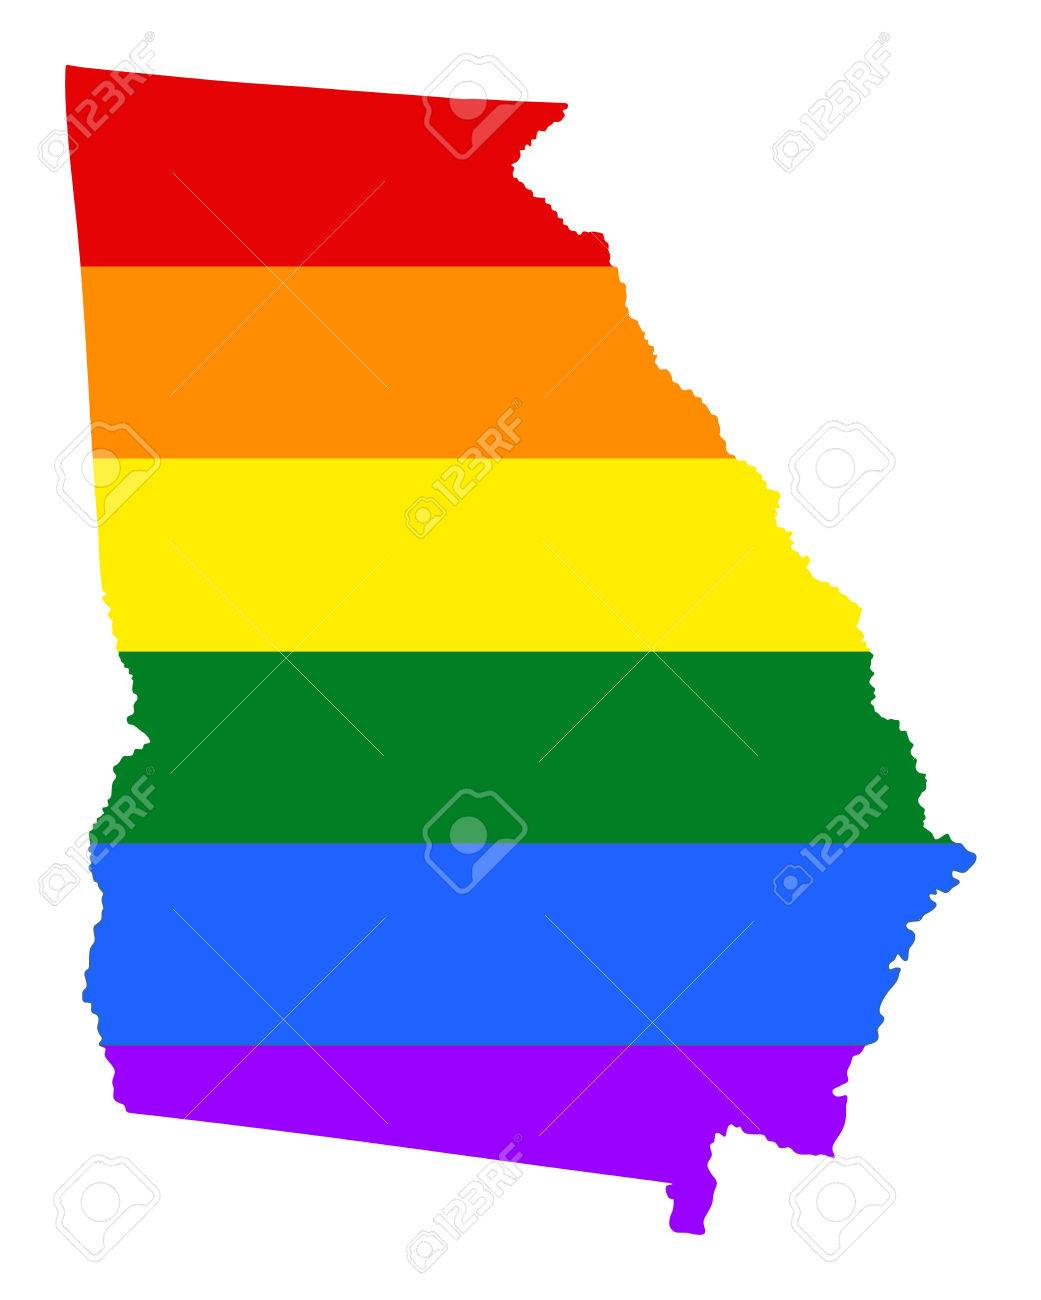 Georgia Pride Gay Map With Rainbow Flag Colors United States